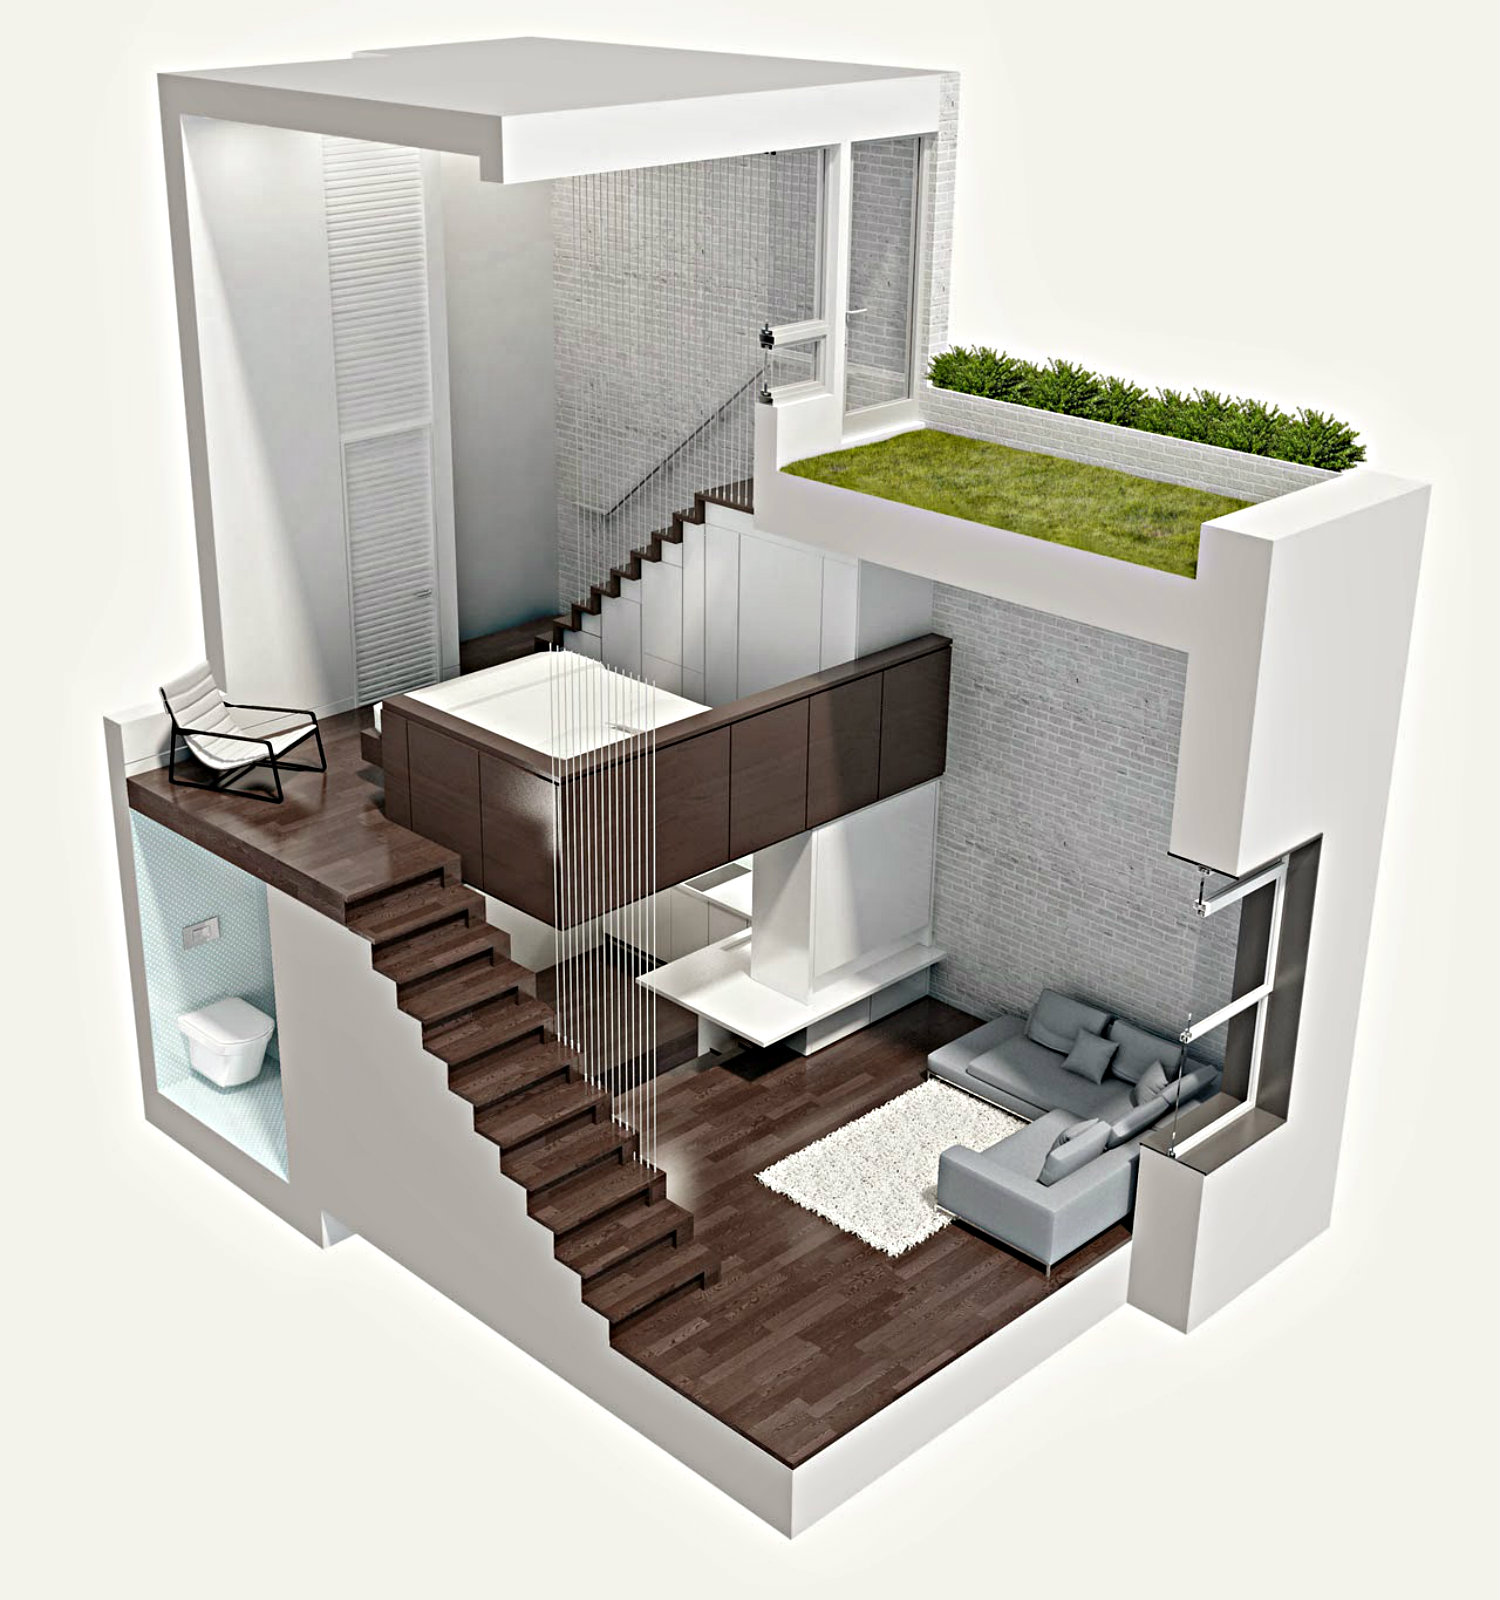 home-insight-micro-loft-2